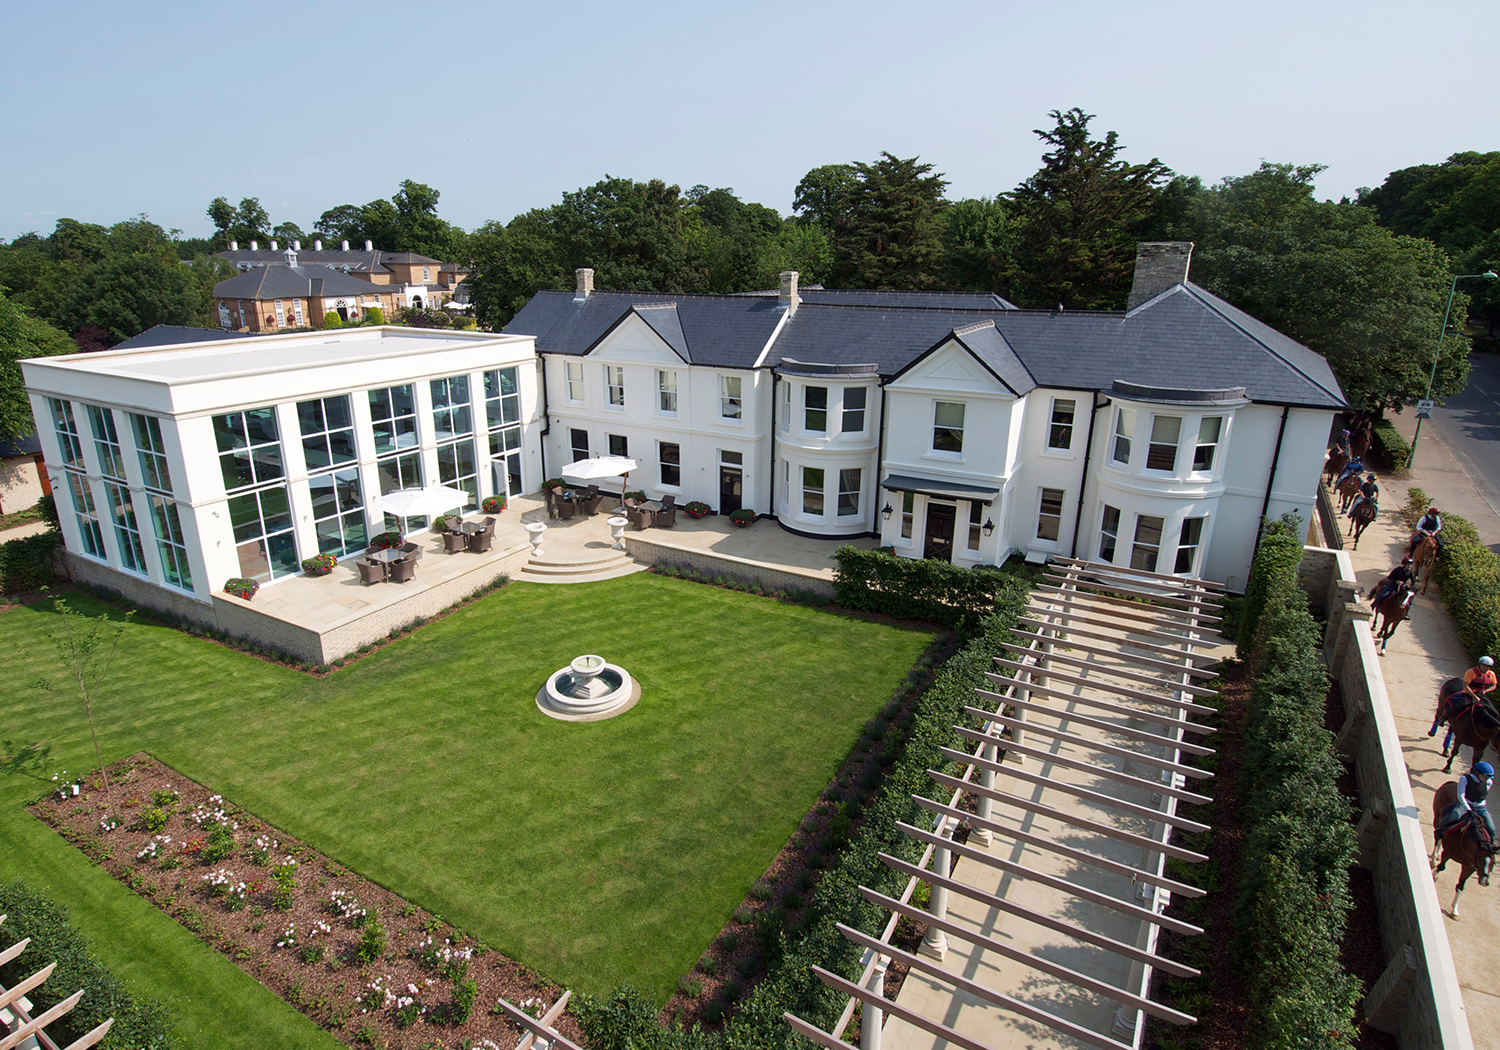 Projects-CareHospitality-BedfordSpa-LawnAerial-1500x1050